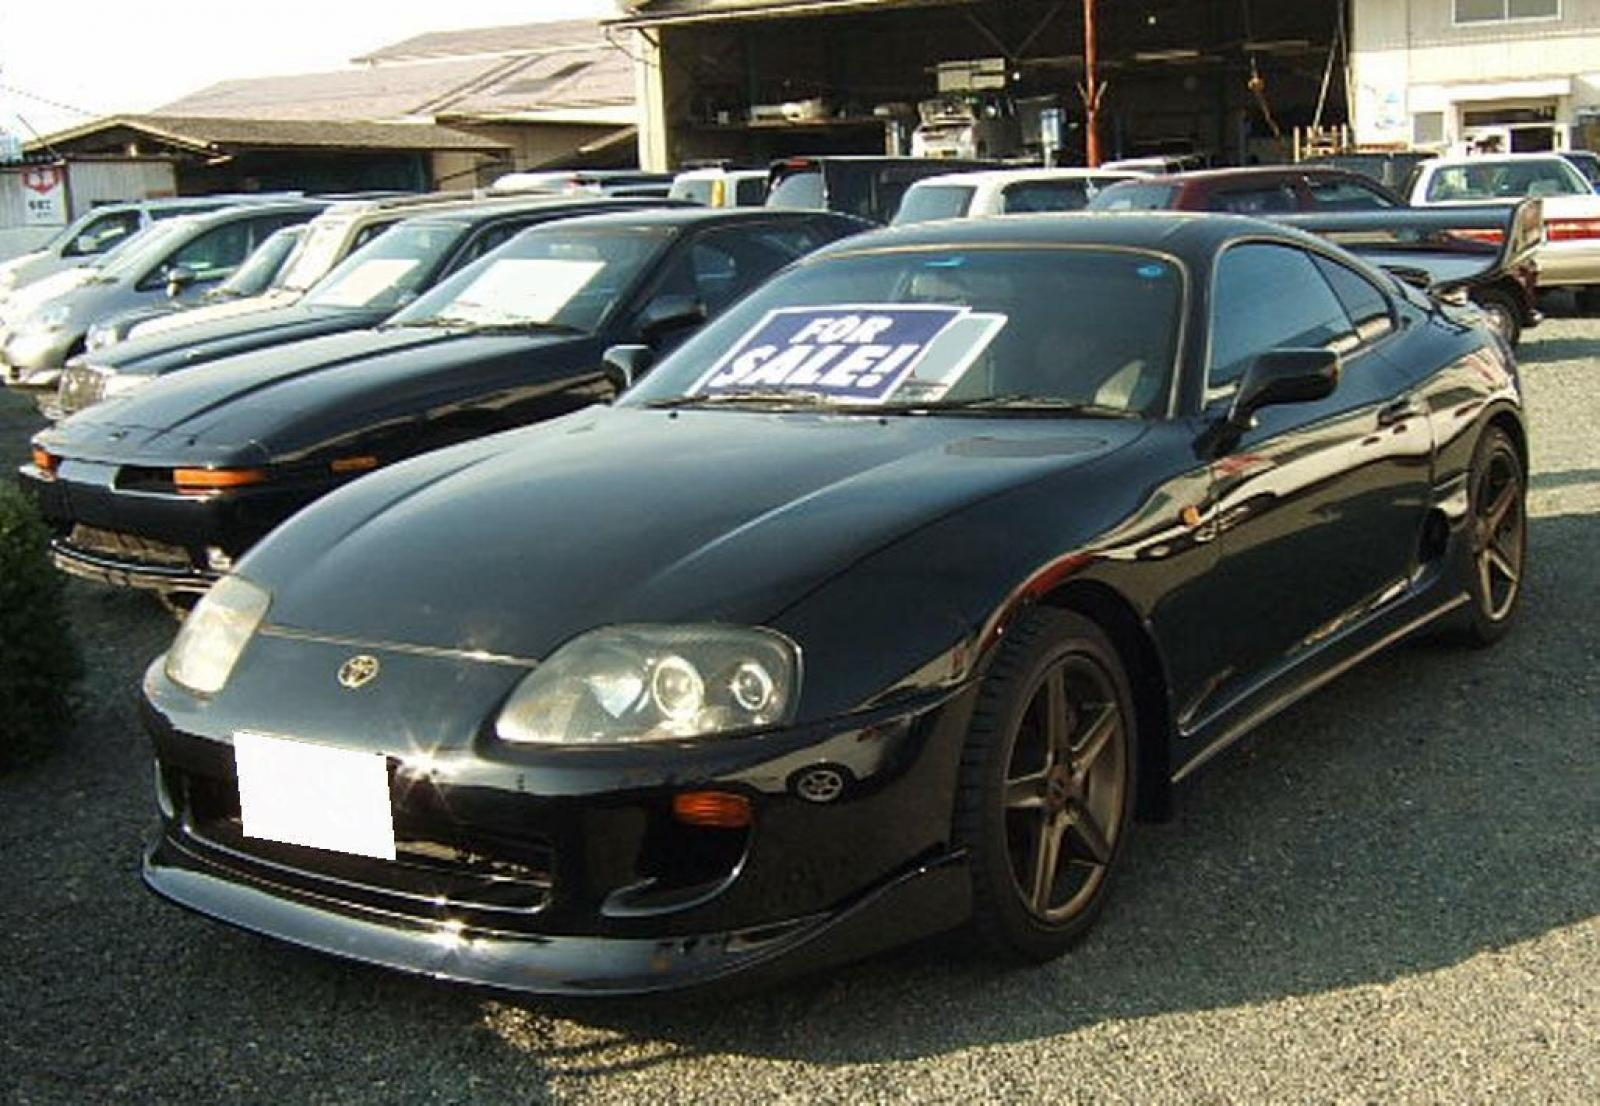 1995 toyota supra information and photos zombiedrive. Black Bedroom Furniture Sets. Home Design Ideas